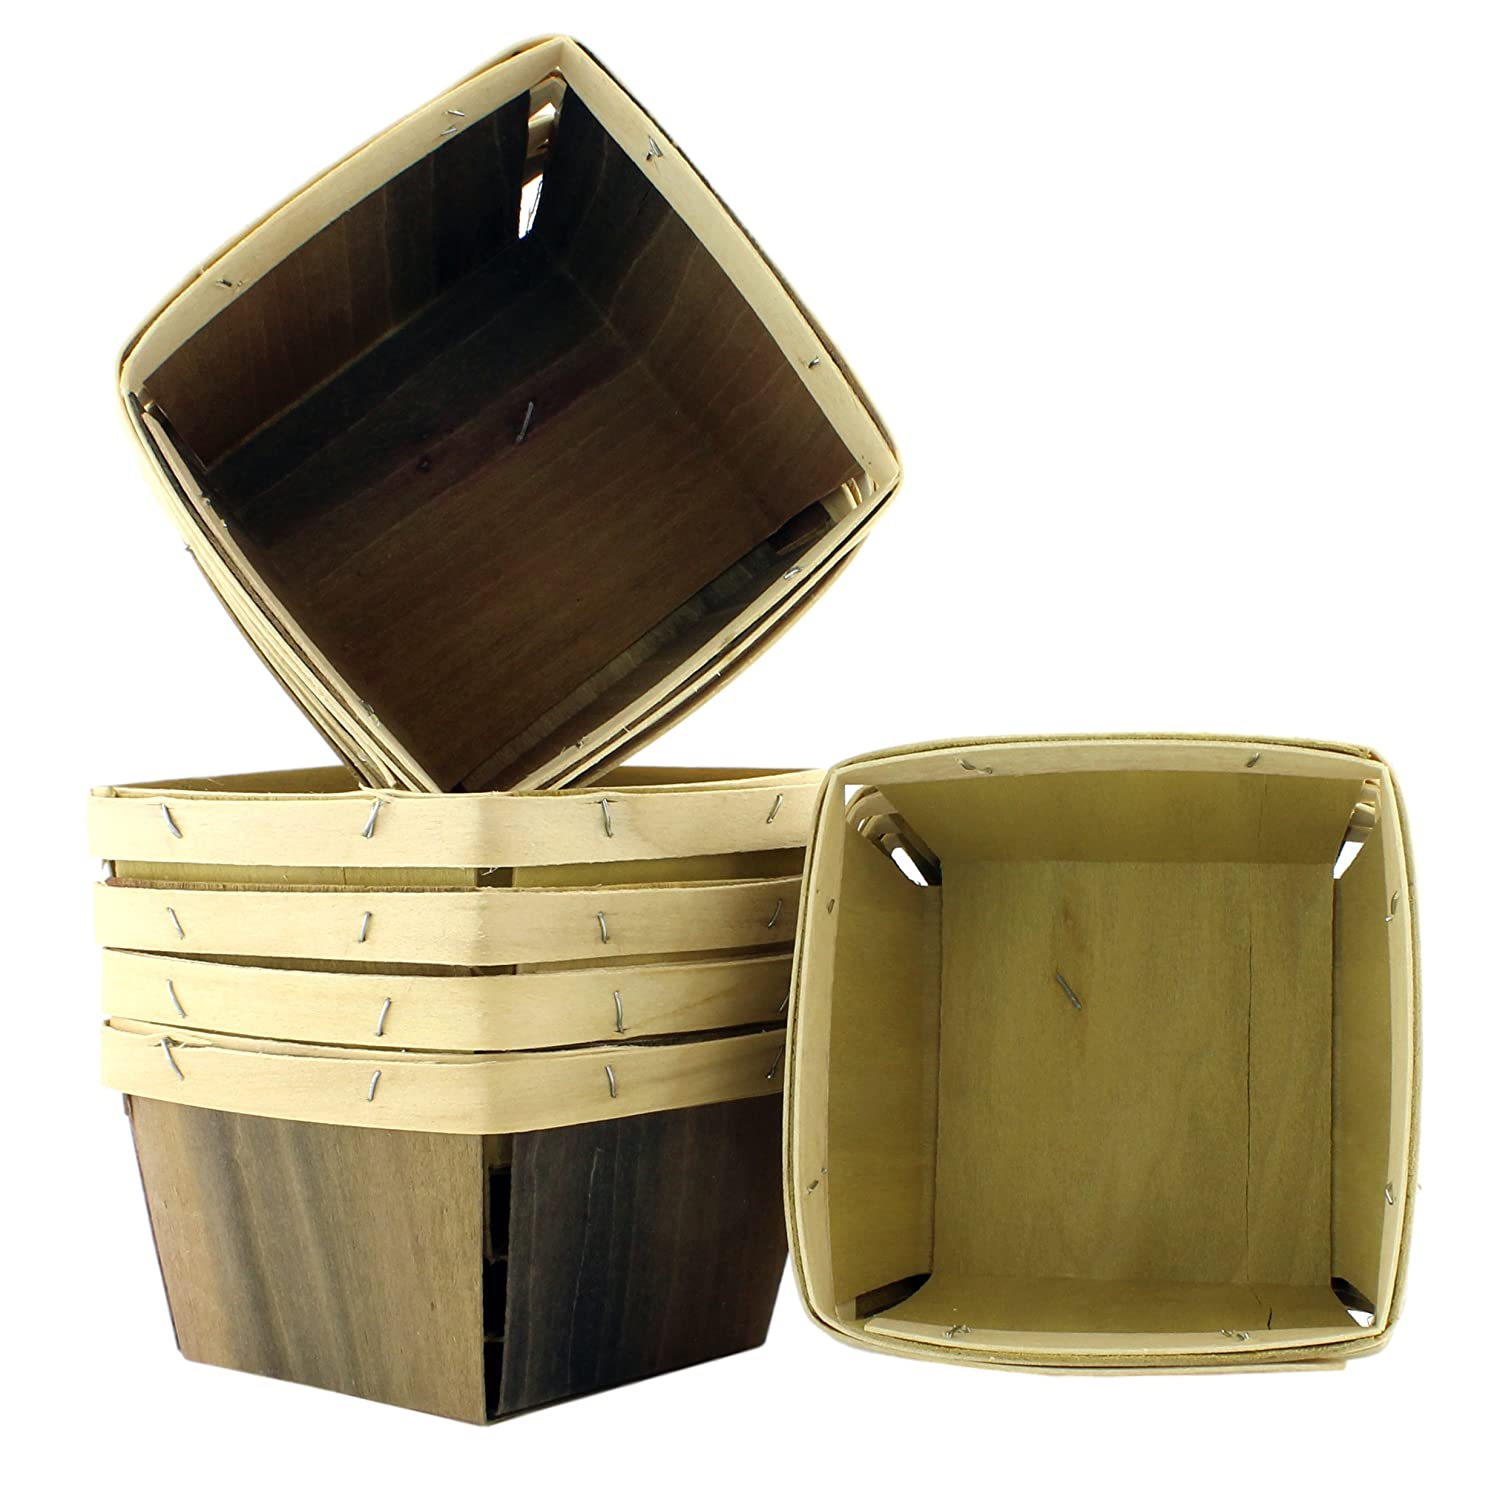 "One Quart Wooden Berry Baskets (8-Pack); 5.5"" Square Vented Wood Boxes for Fruit Picking or Arts & Crafts Cornucopia Brands"